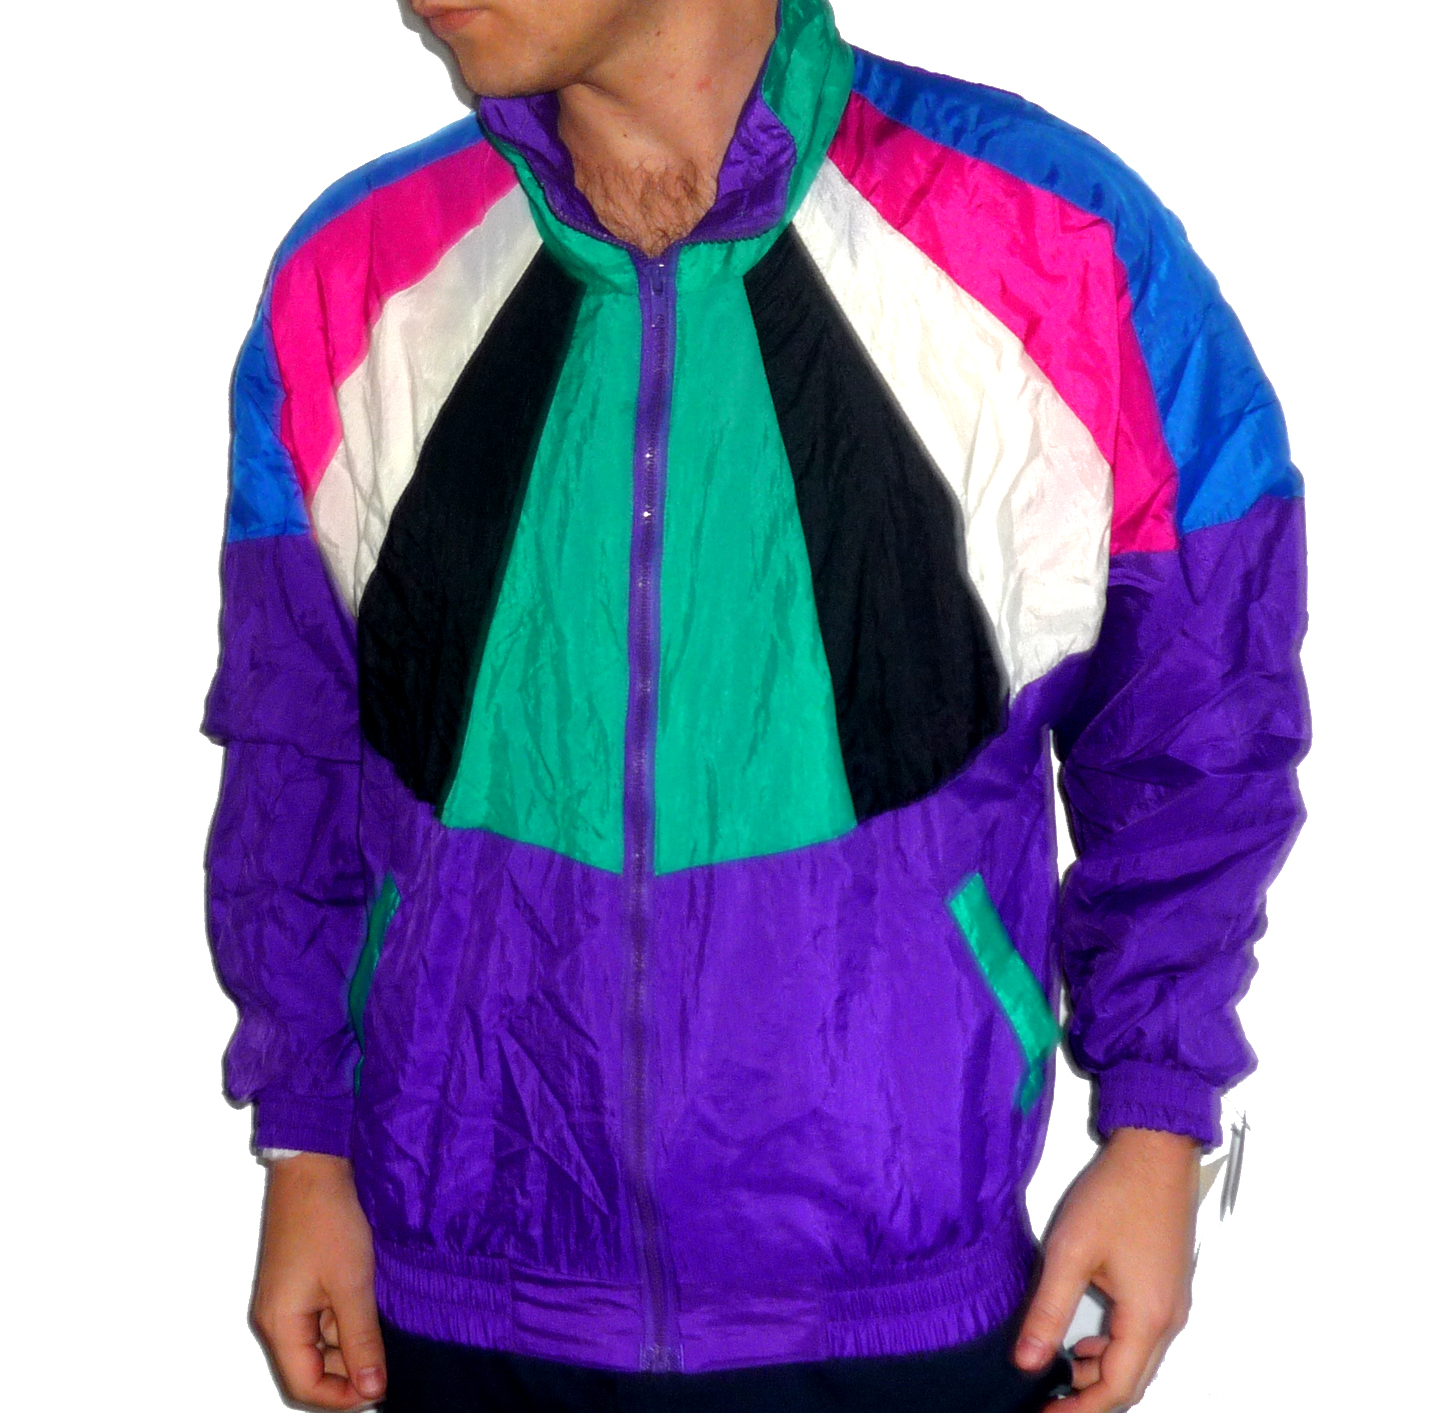 Vintage Windbreaker Jacket | Outdoor Jacket